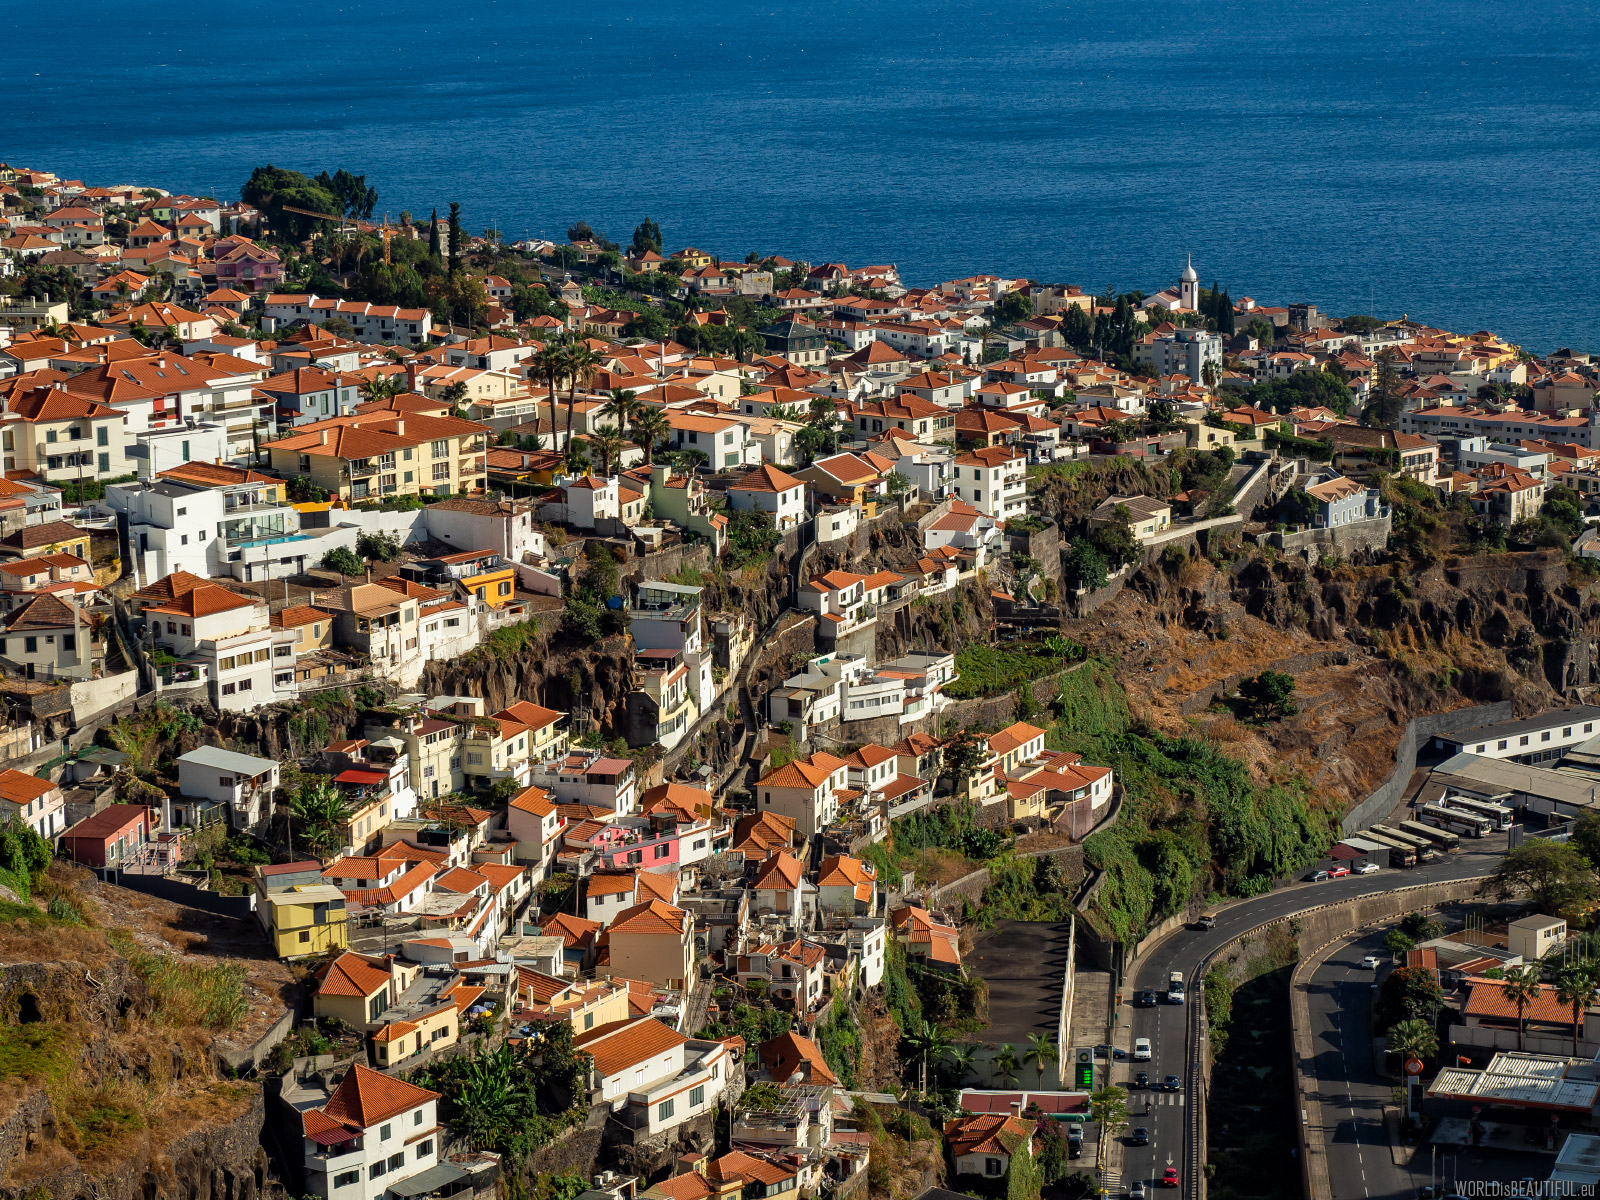 Funchal from the bird's eye view